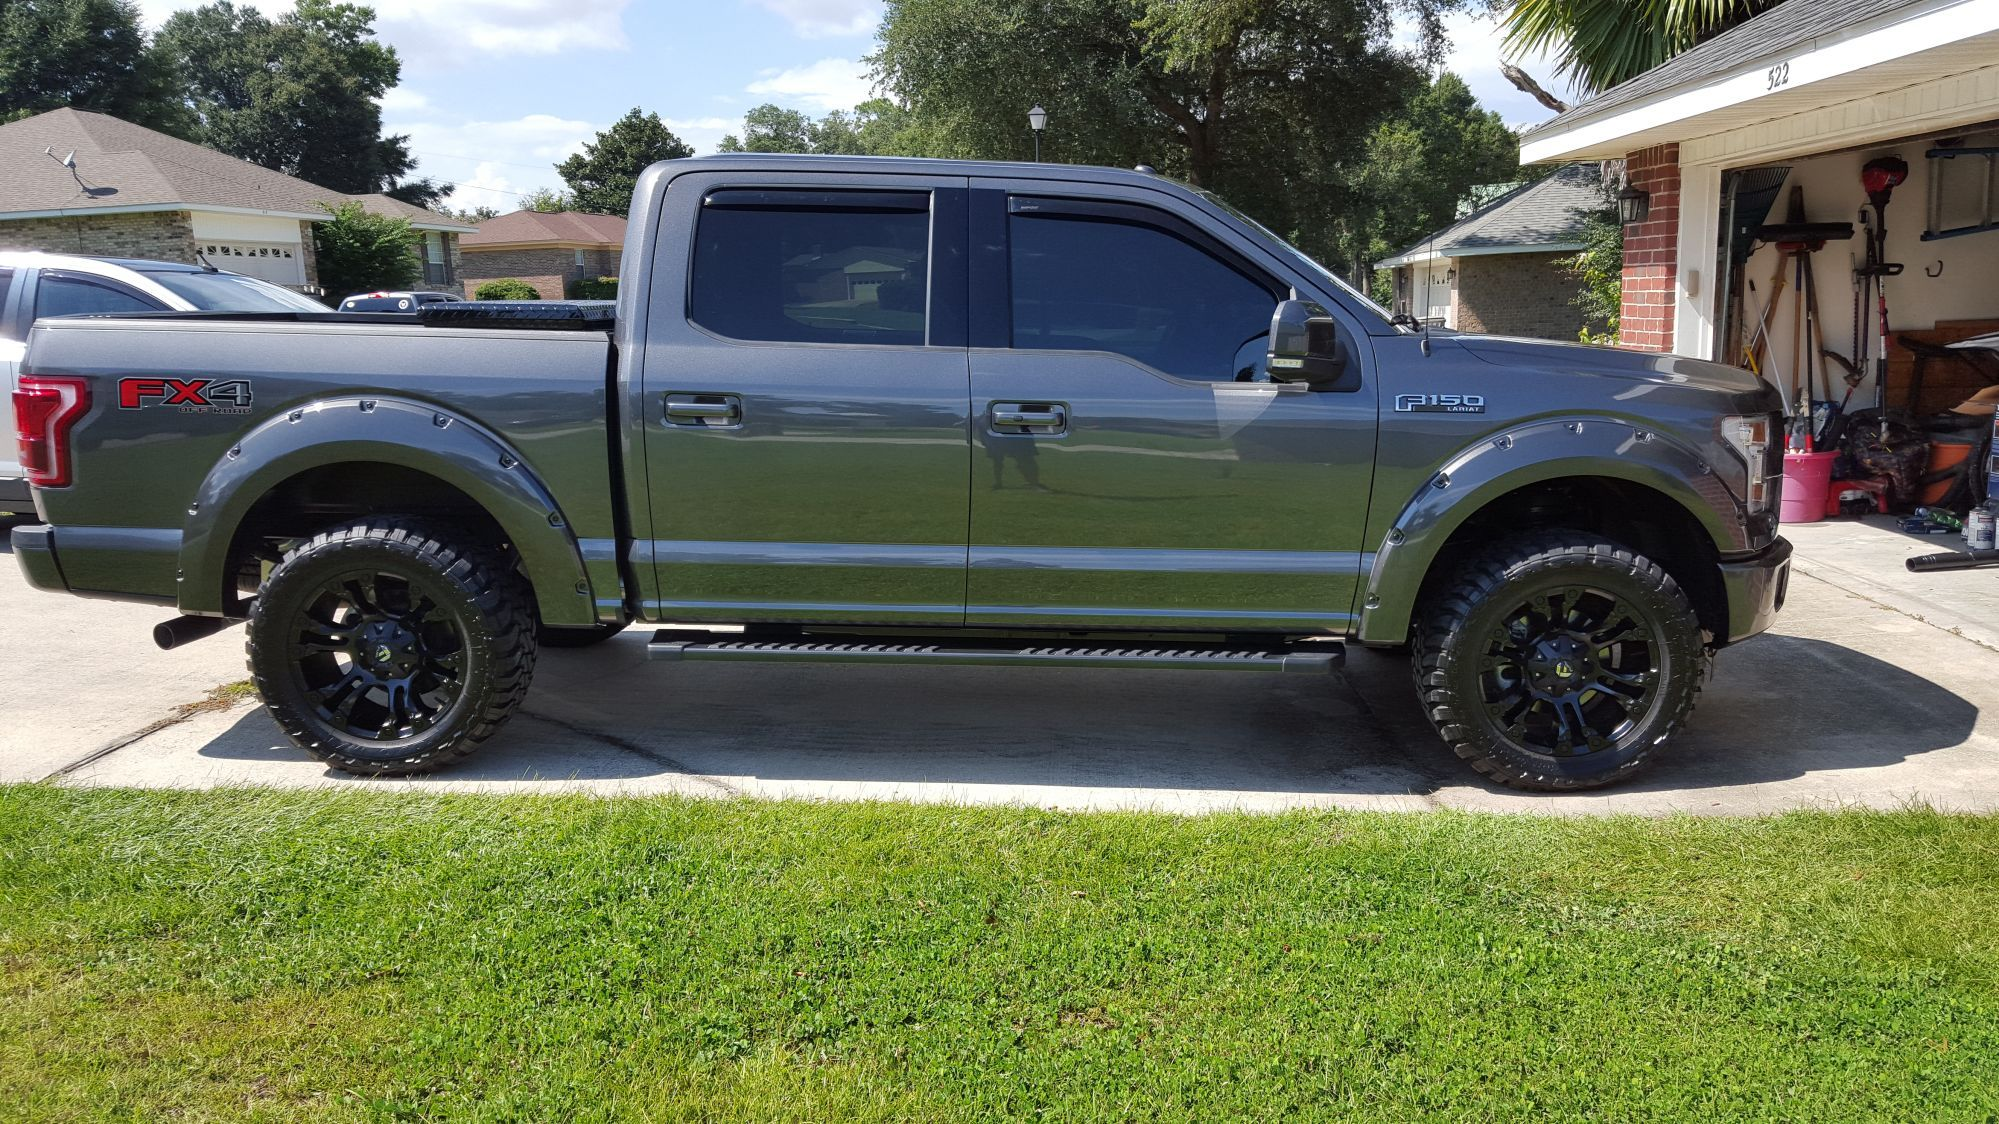 Ford f150 forum community of ford truck fans